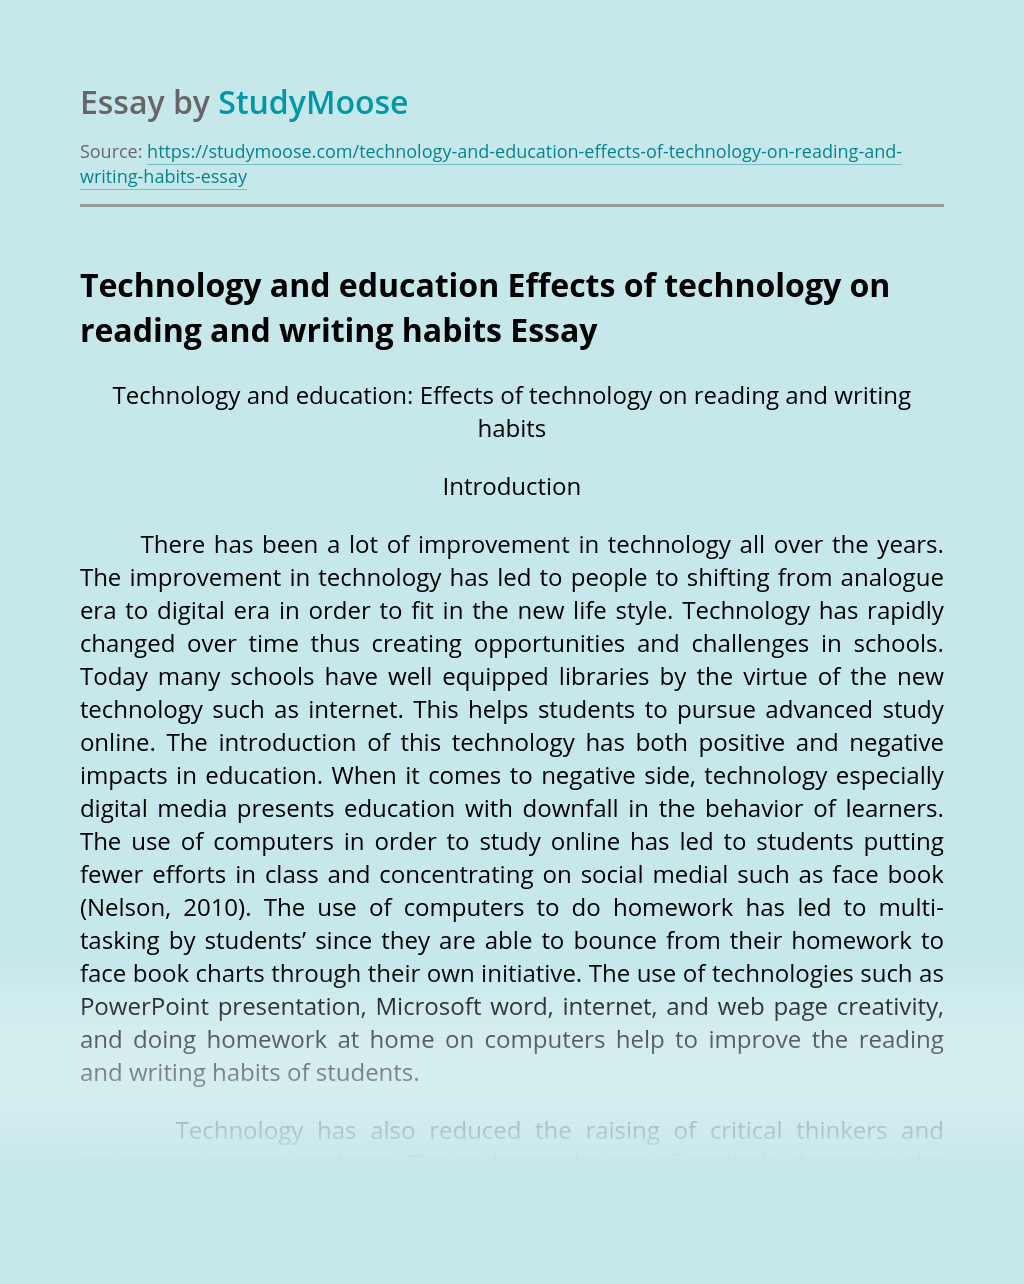 Technology and education Effects of technology on reading and writing habits